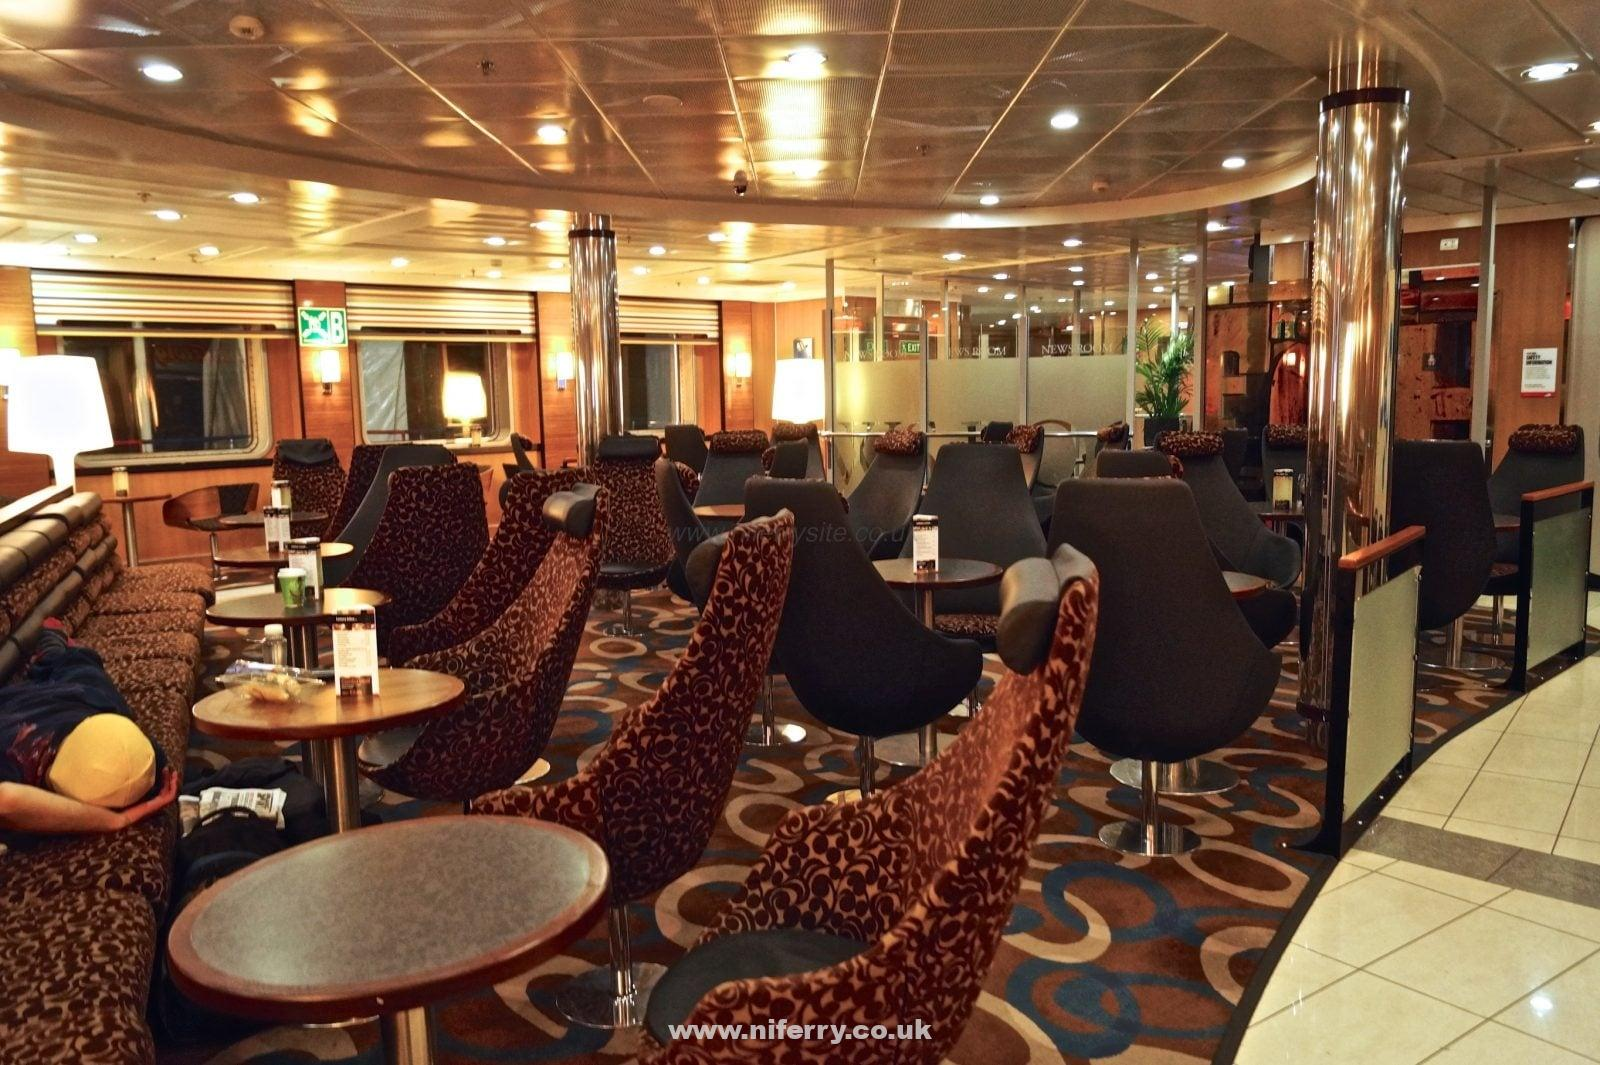 Continuing our walk towards the bow (front) of the ship, we next pass through one of the main seating areas, the Barista Coffee Shop. This view is taken from the other side looking towards the news room (the glass panels in the background). © NIFerrySite.